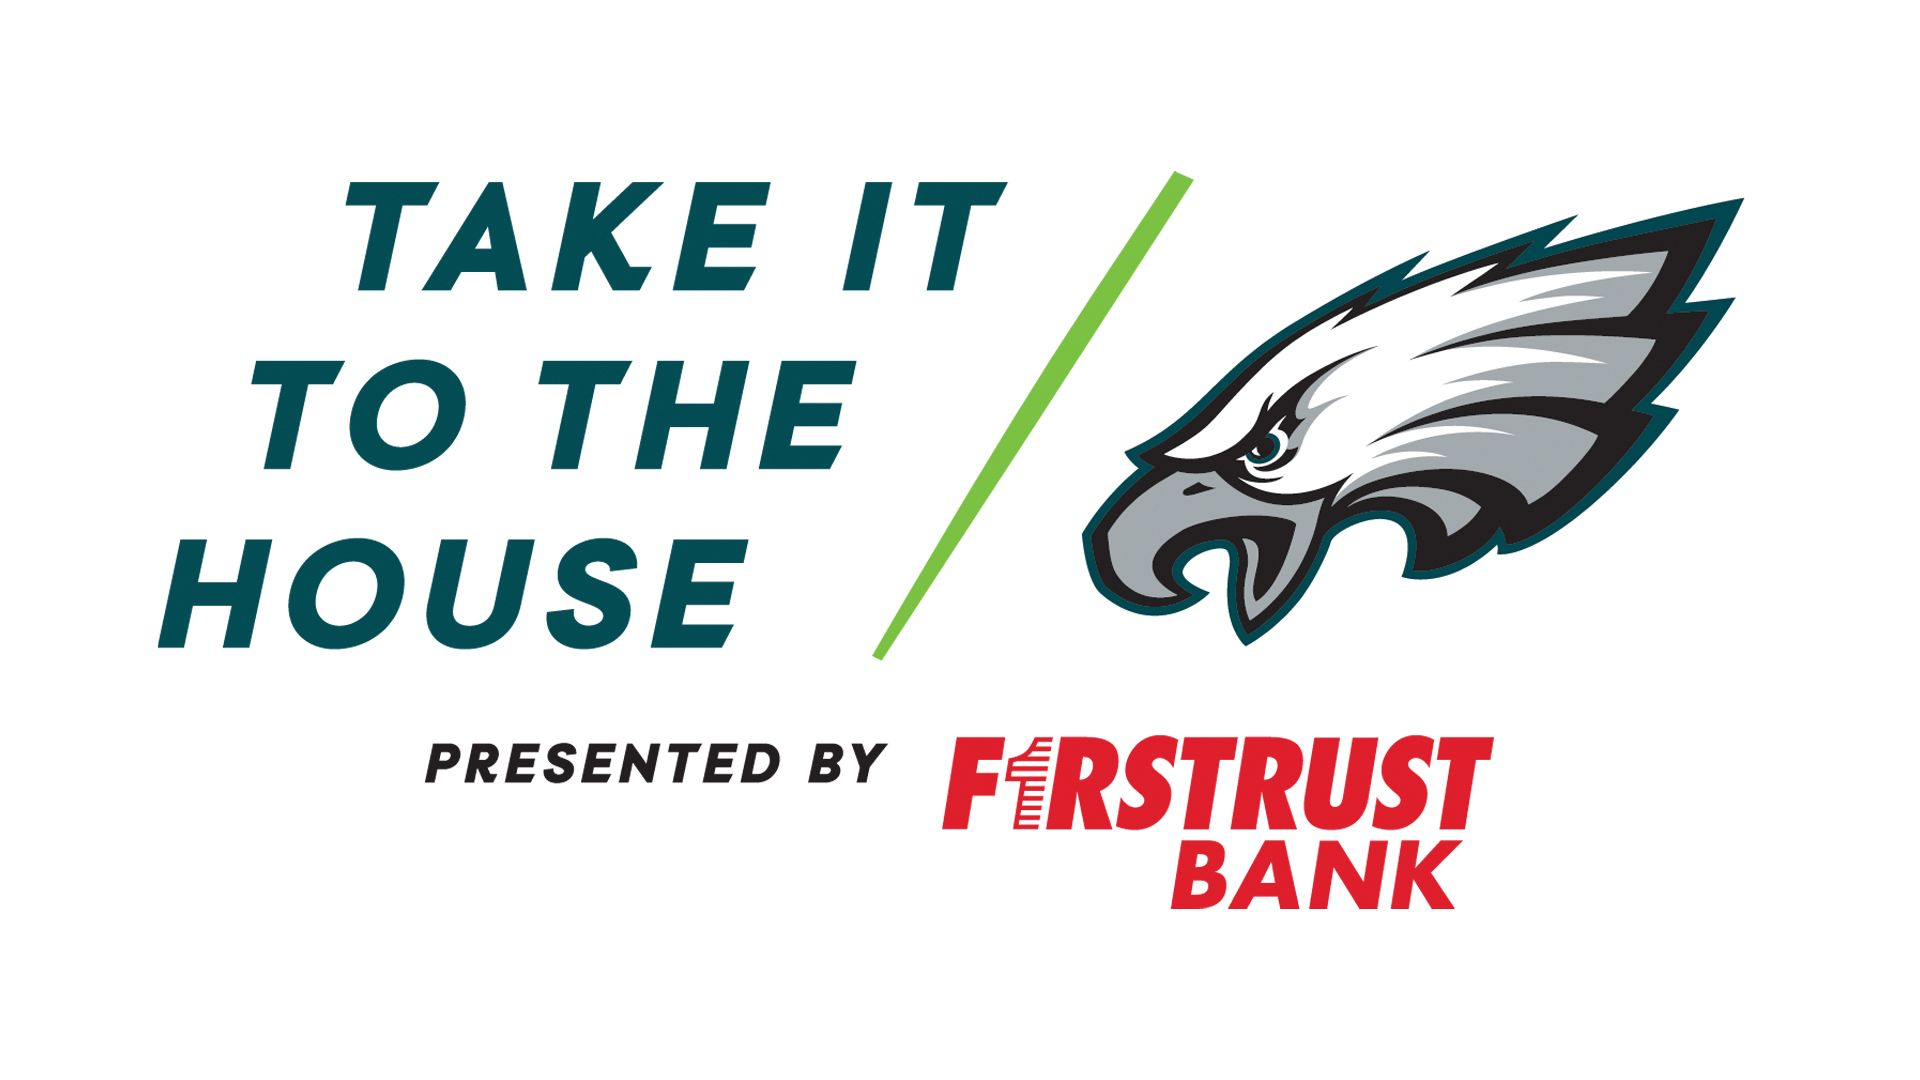 Firstrust Bank Take It To The House